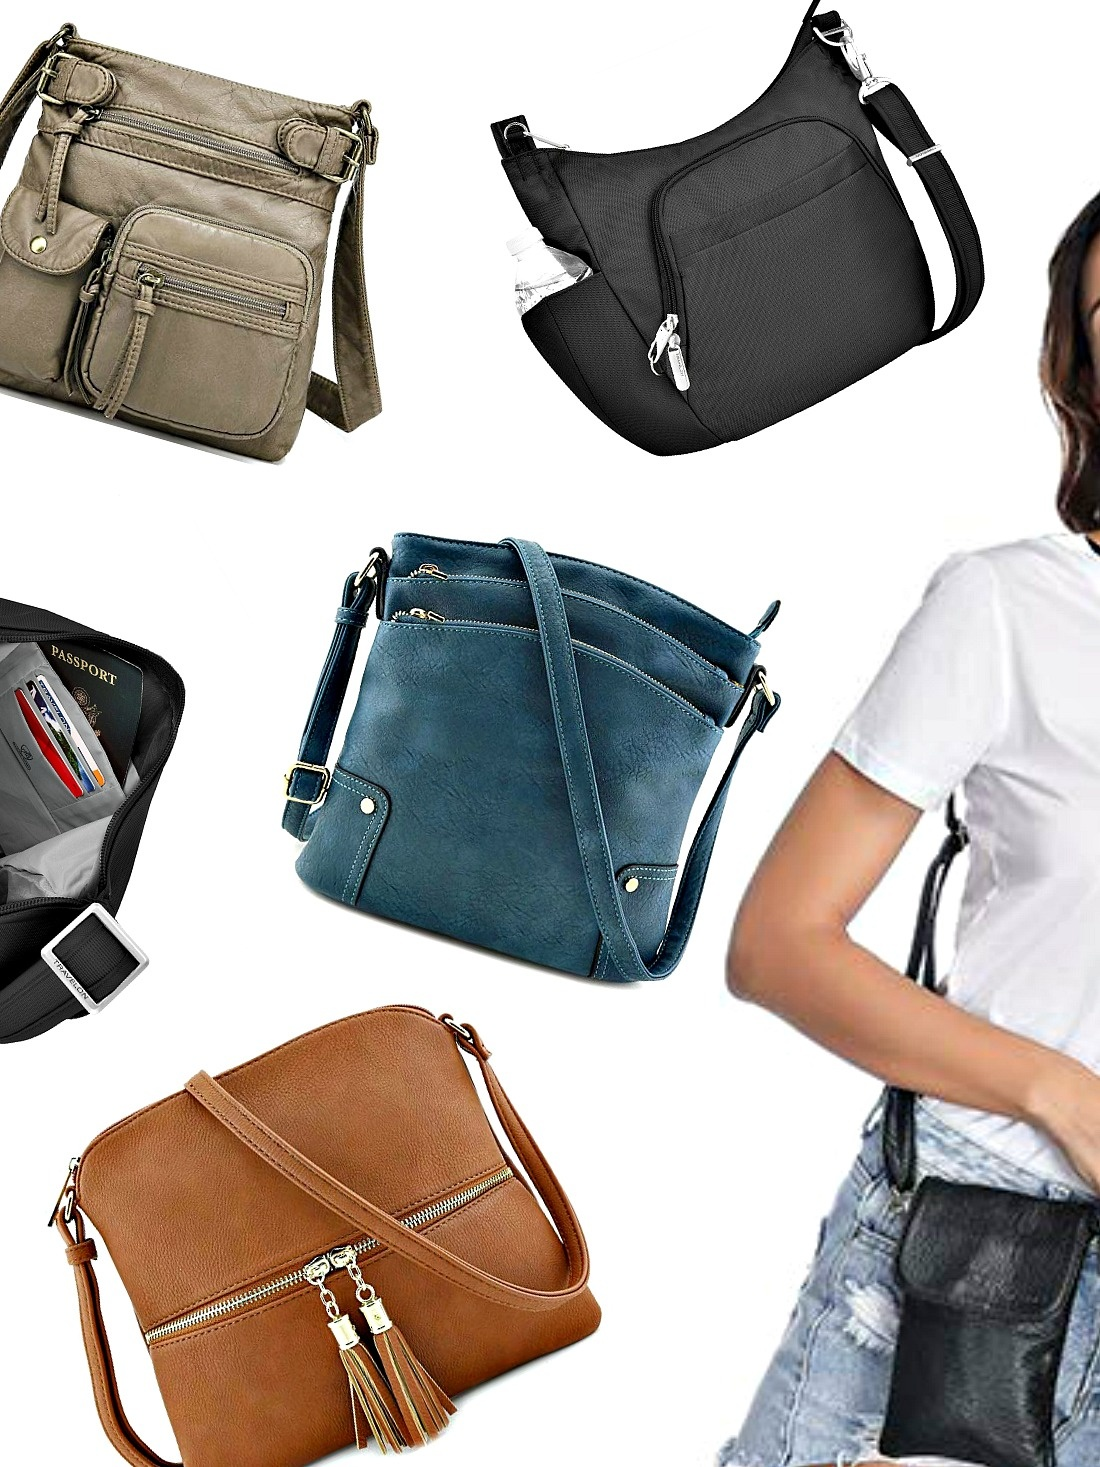 Still looking for the best crossbody bags for women? Here are some of the most popular styles for you to consider!